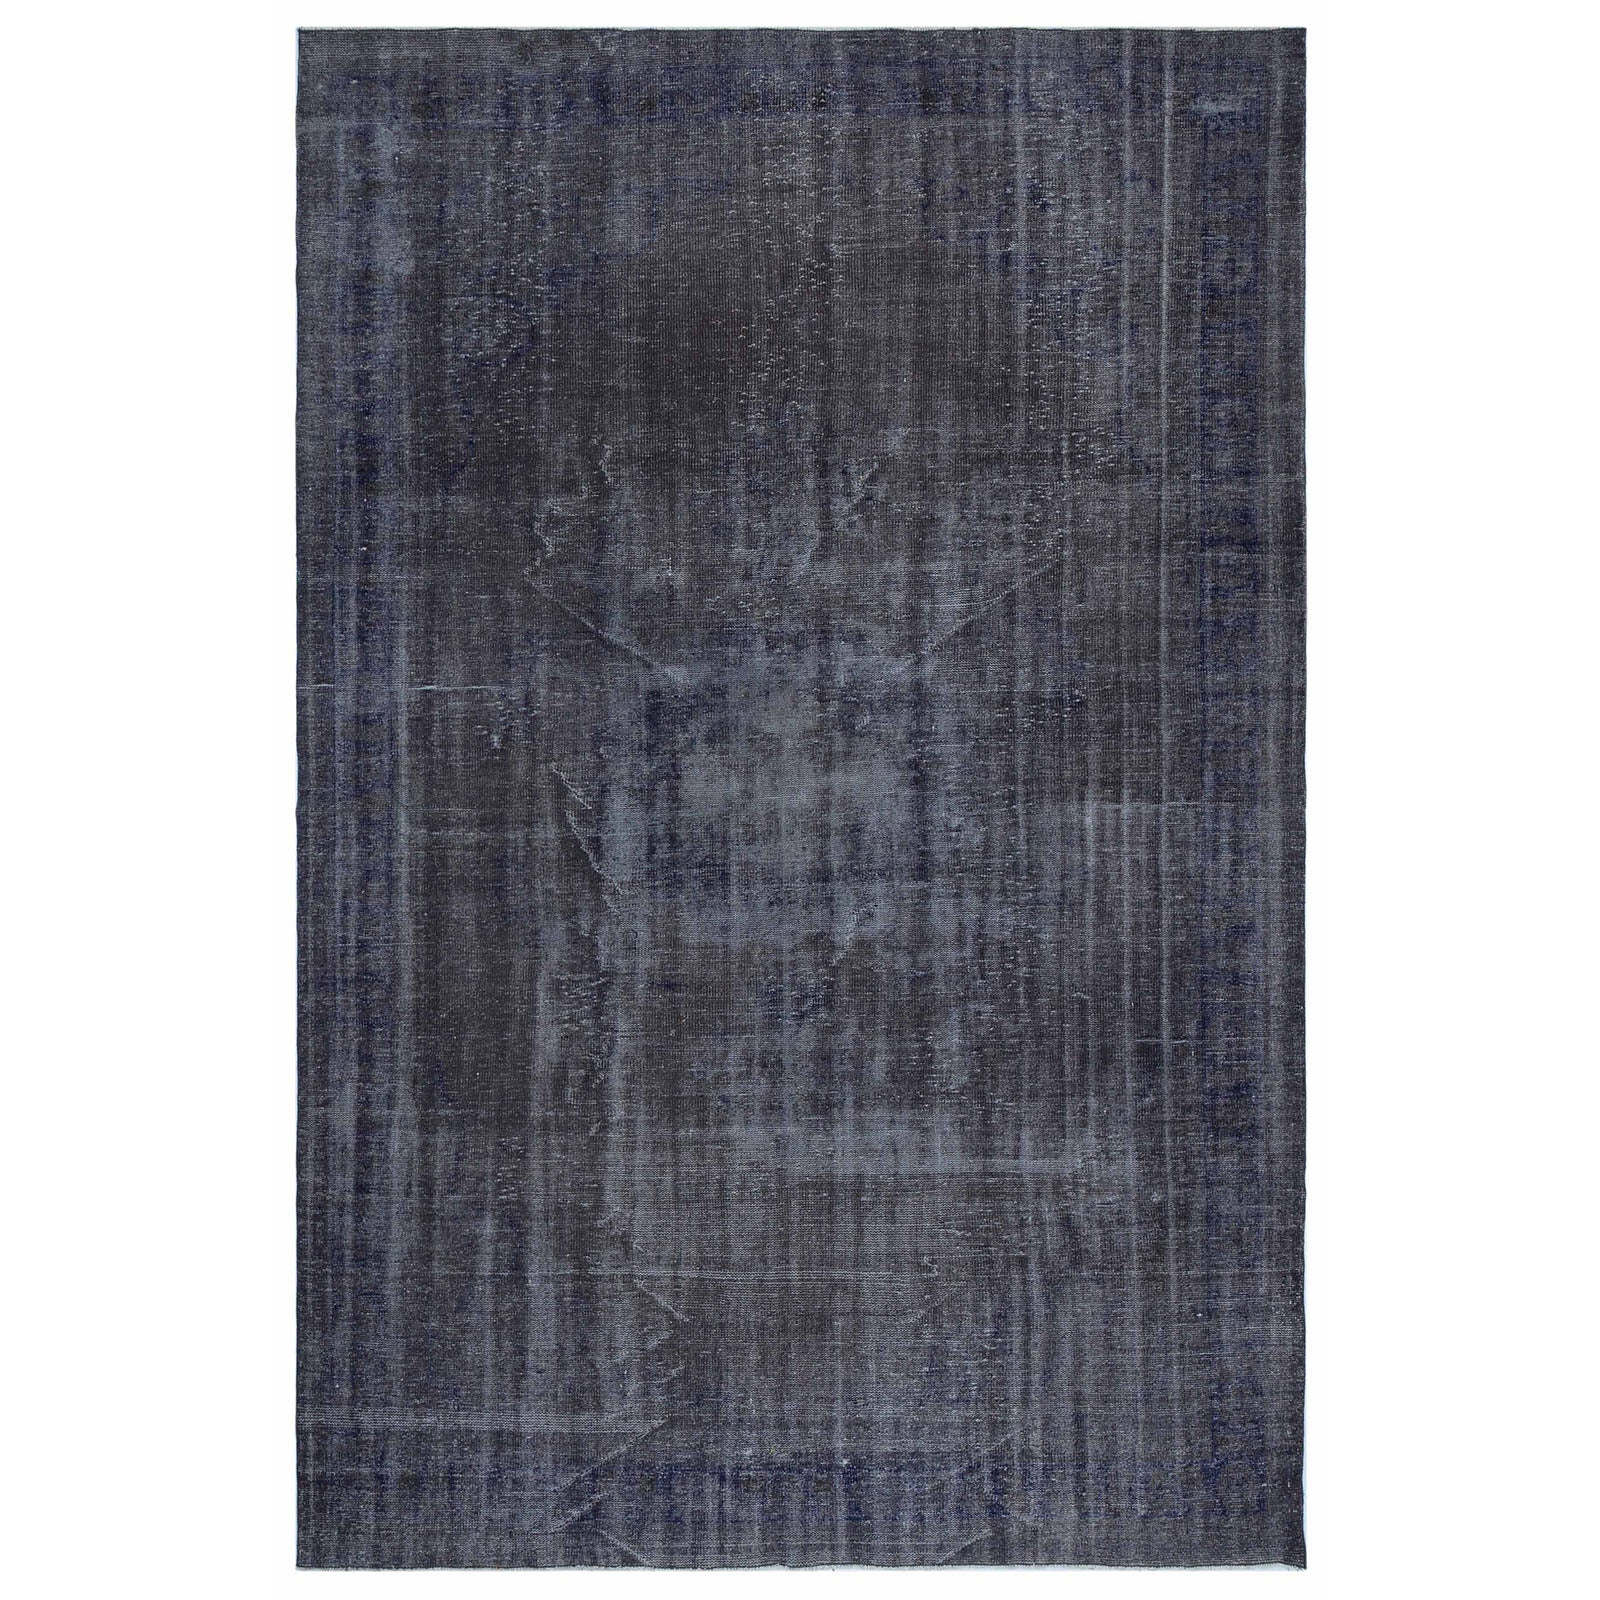 Hali 219X235 CM Bursa Handmade over dyed Rug 1168